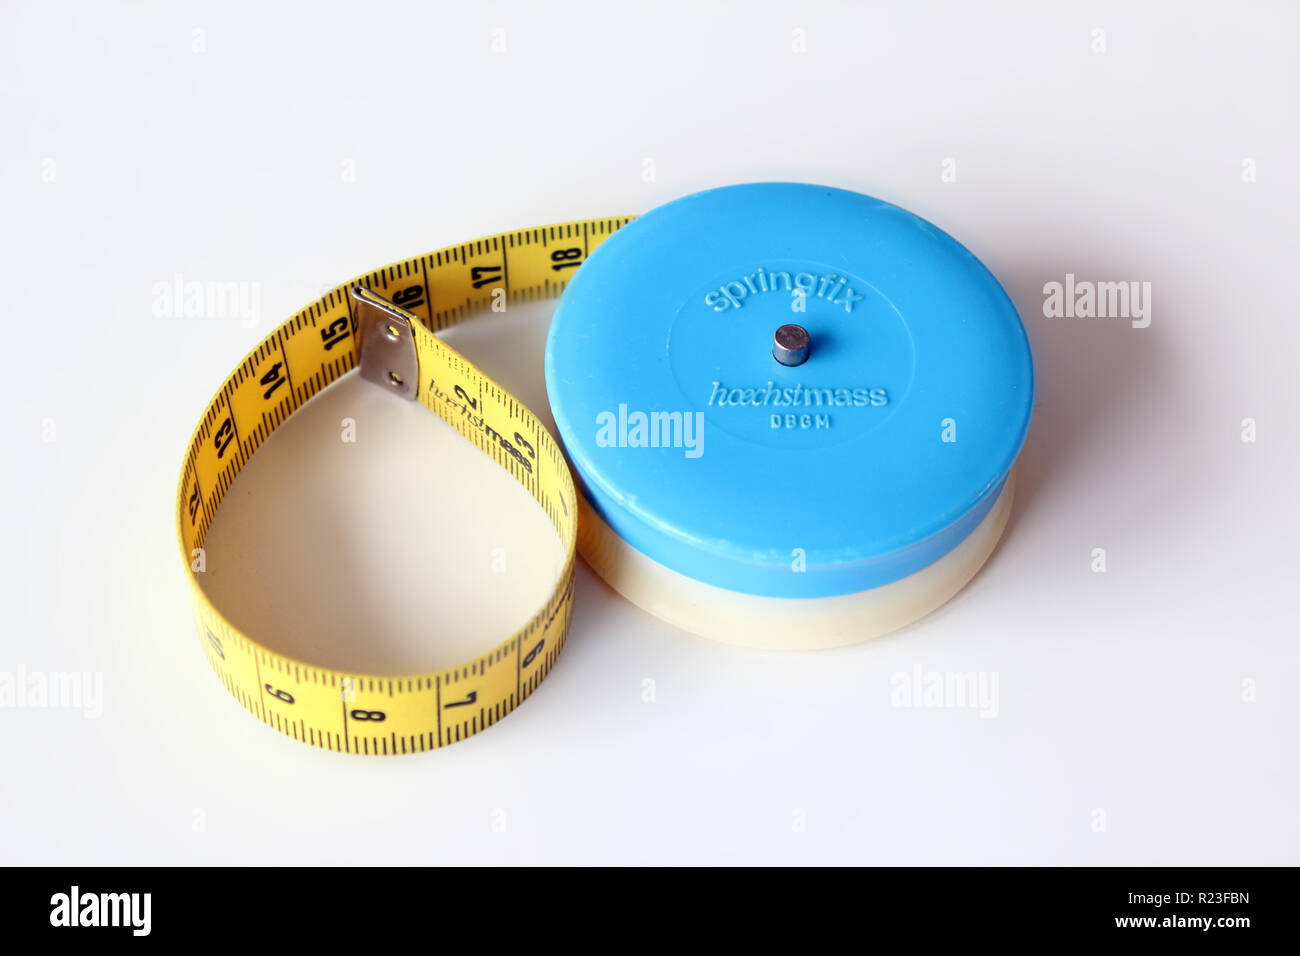 Measuring tape isolated on a white background, close-up - Stock Image